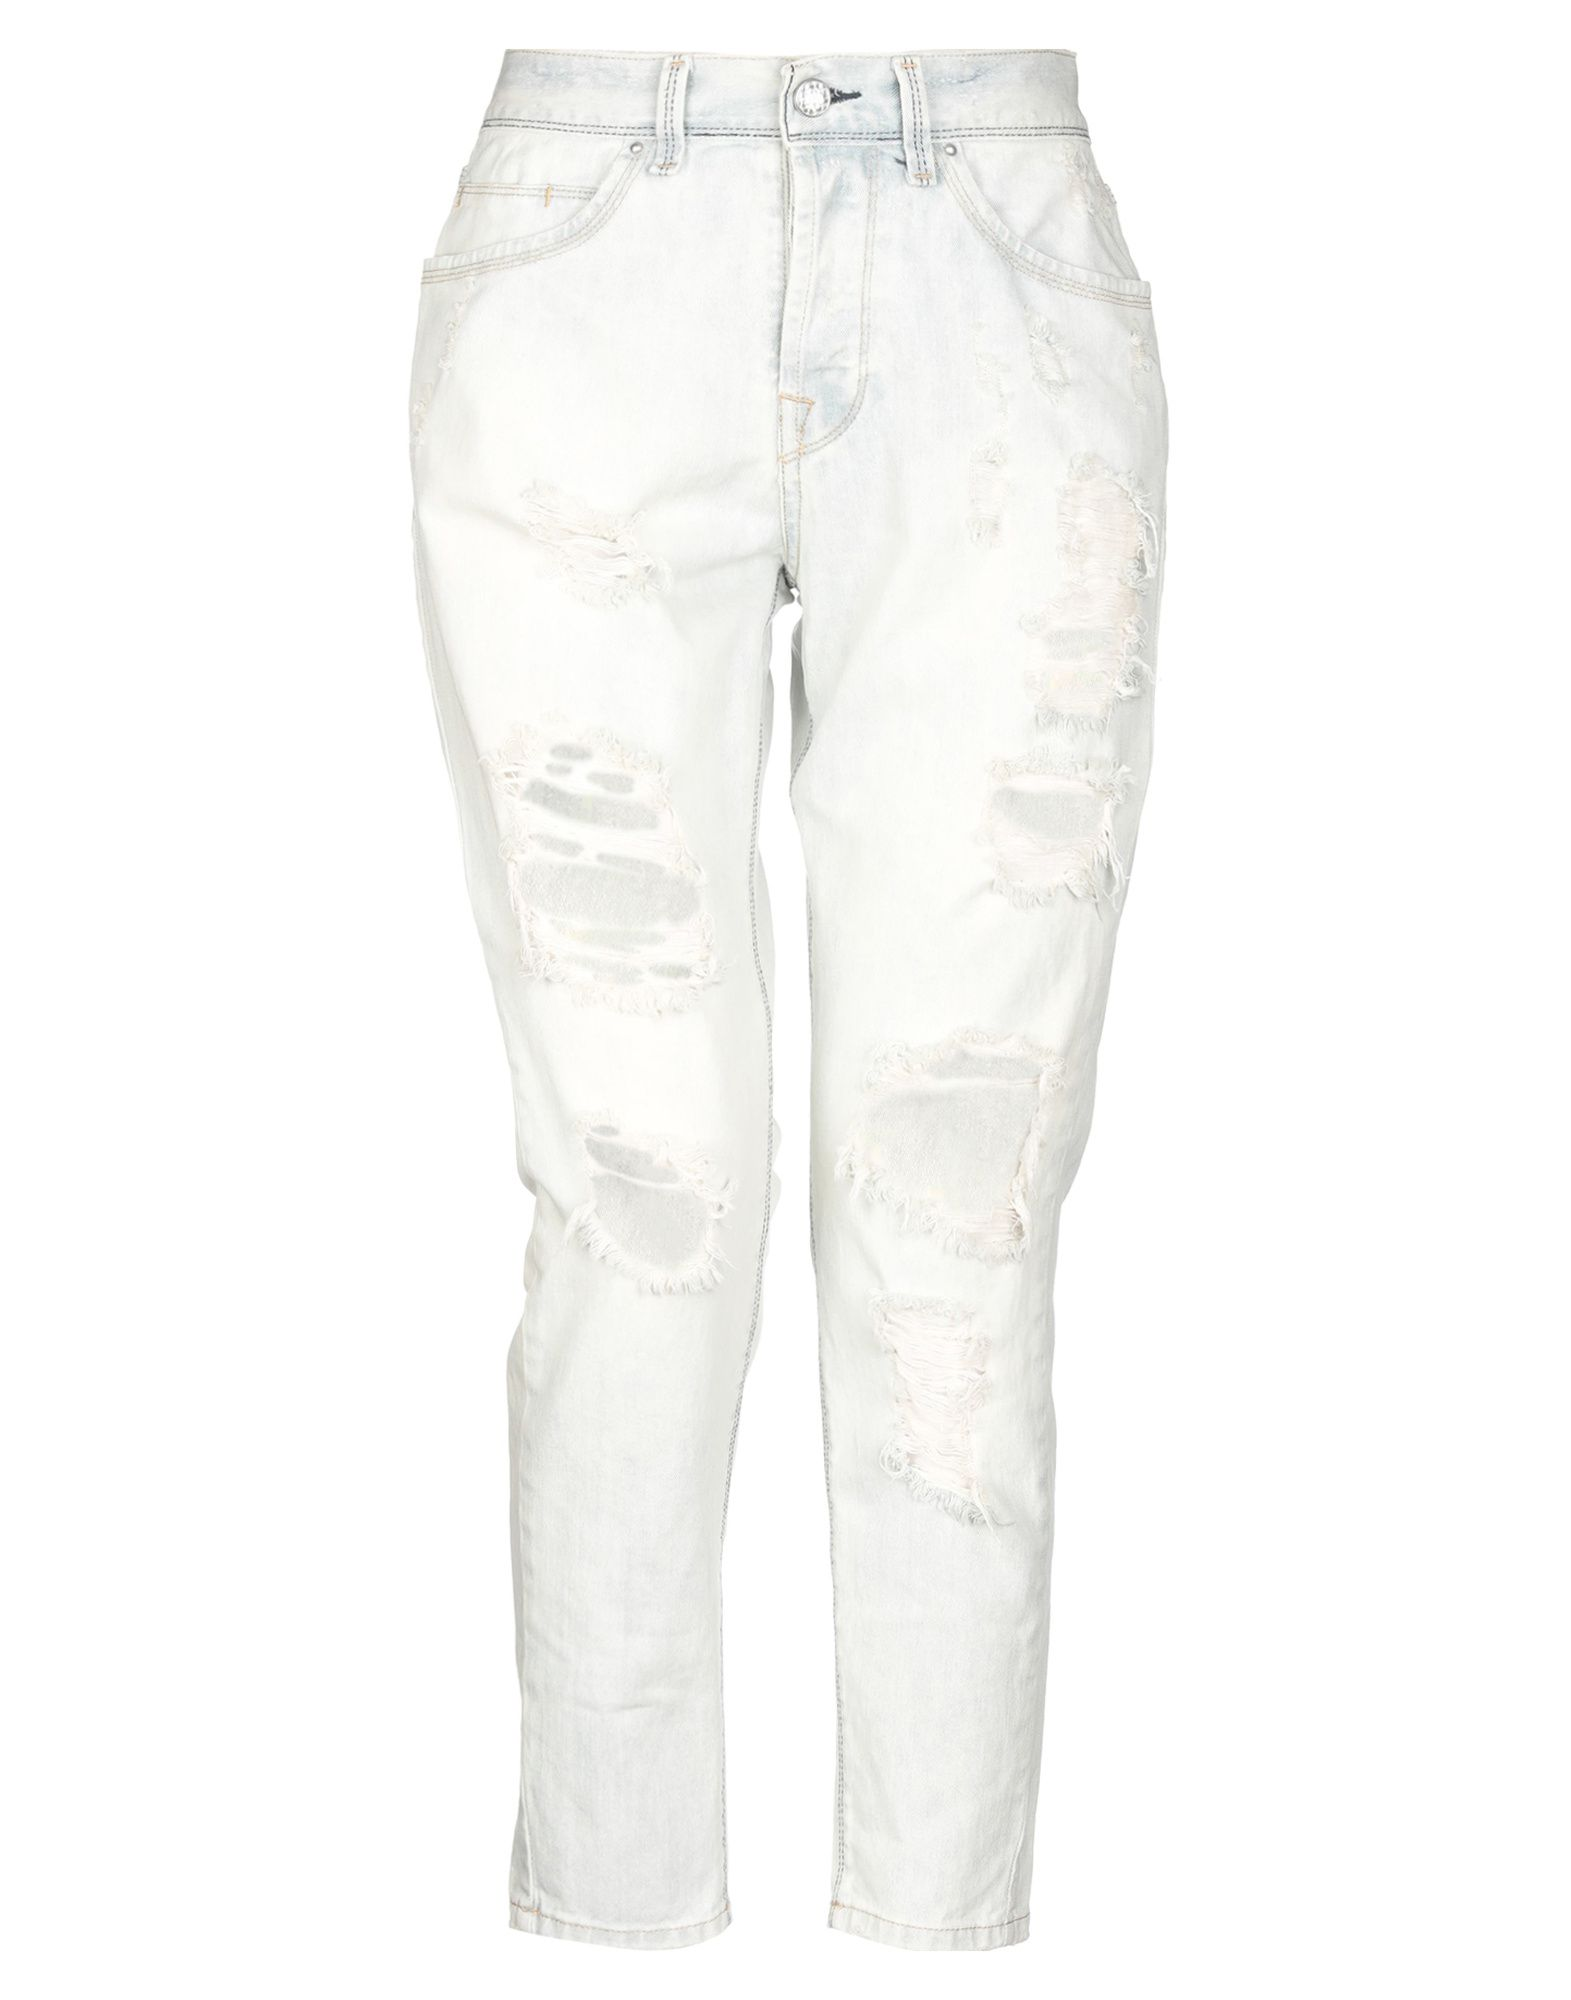 Pantaloni Jeans Doo Wop Wop donna - 42719328KT  in stadion promotions